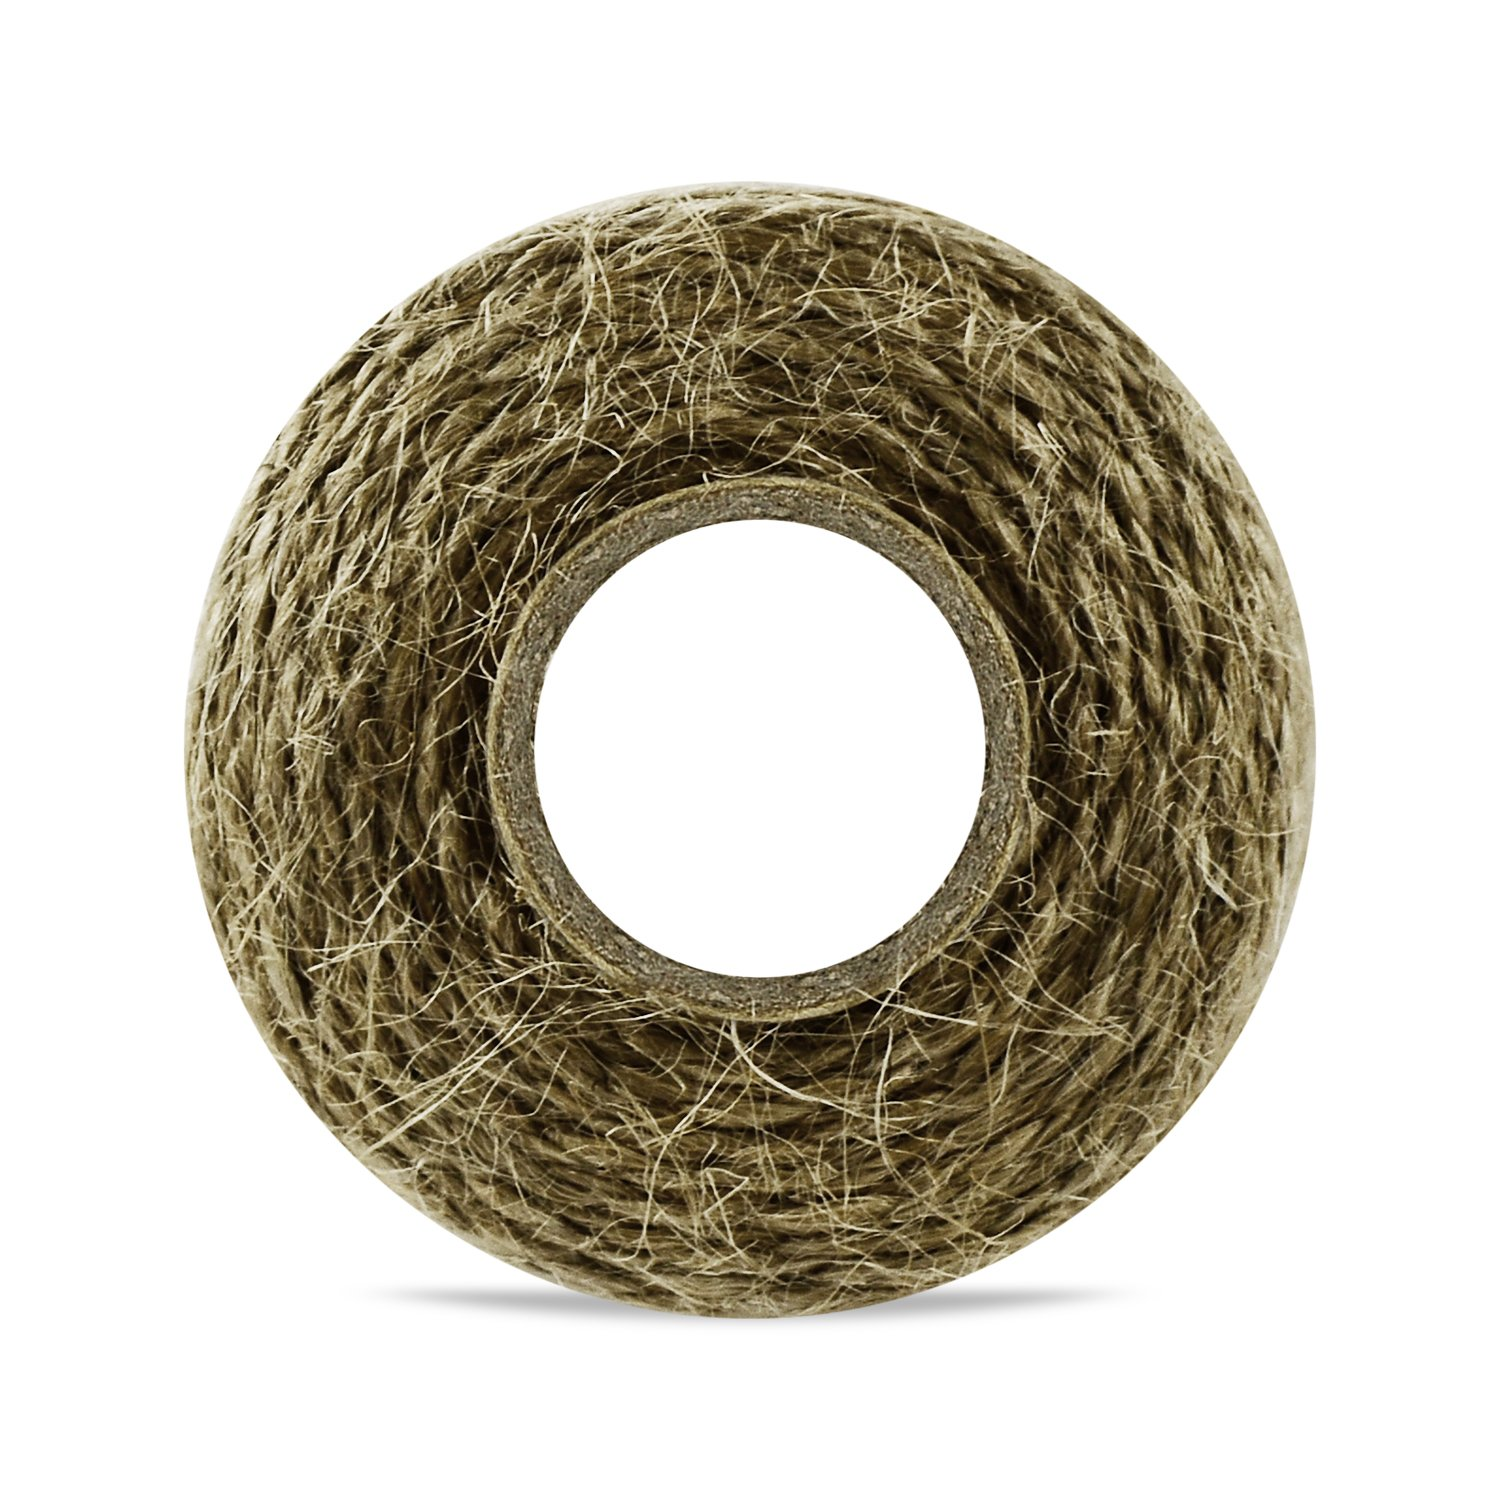 QuWei 3x 300 Feet Natural Jute Twine Best Arts Crafts Gift Twine Christmas Twine Industrial Packing Materials Durable String for Gardening Applications (3PC)